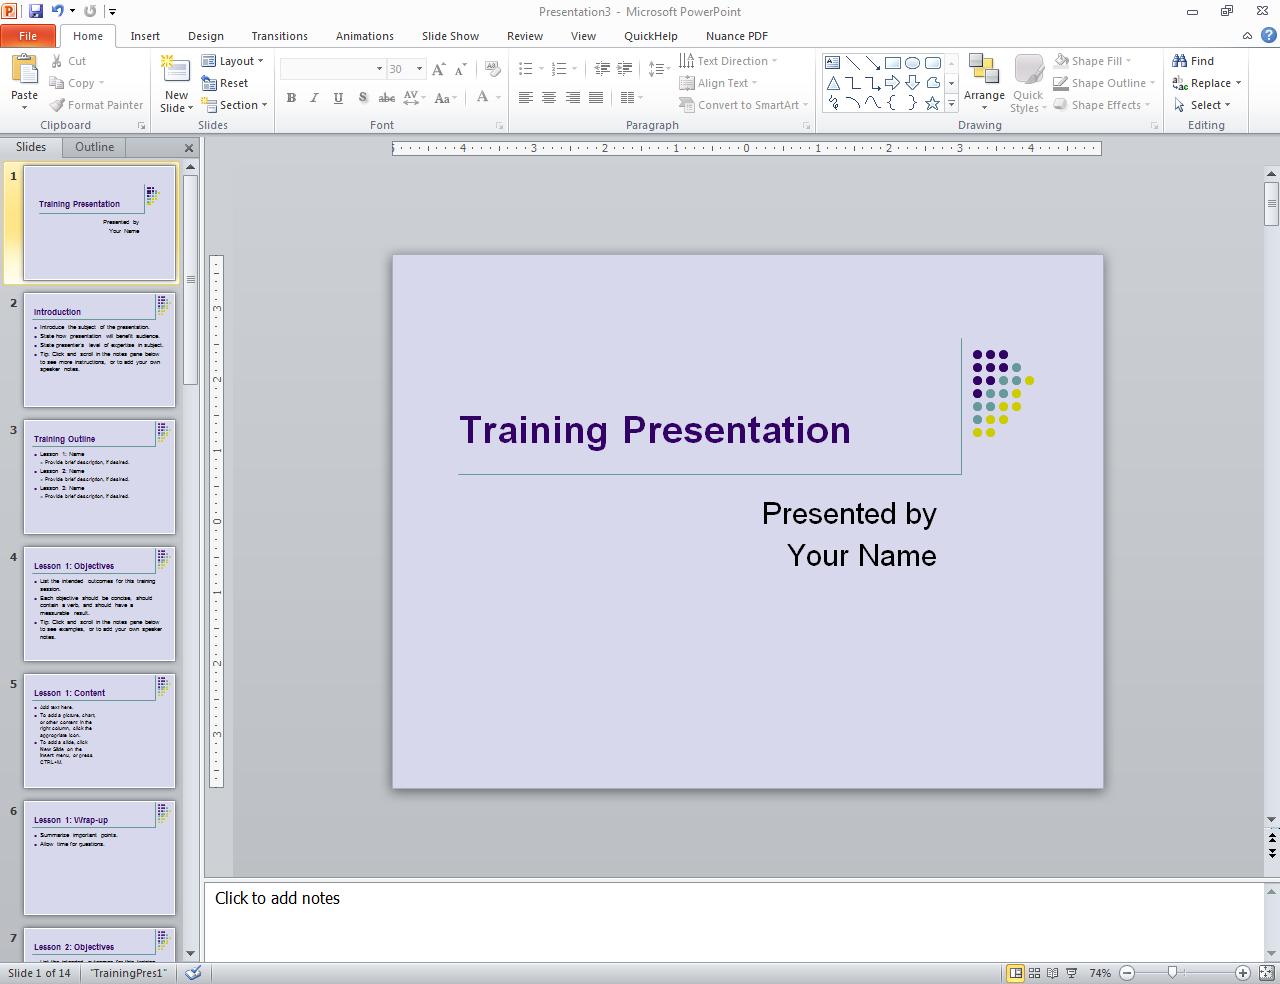 prezi style powerpoint template image collections - templates, Modern powerpoint